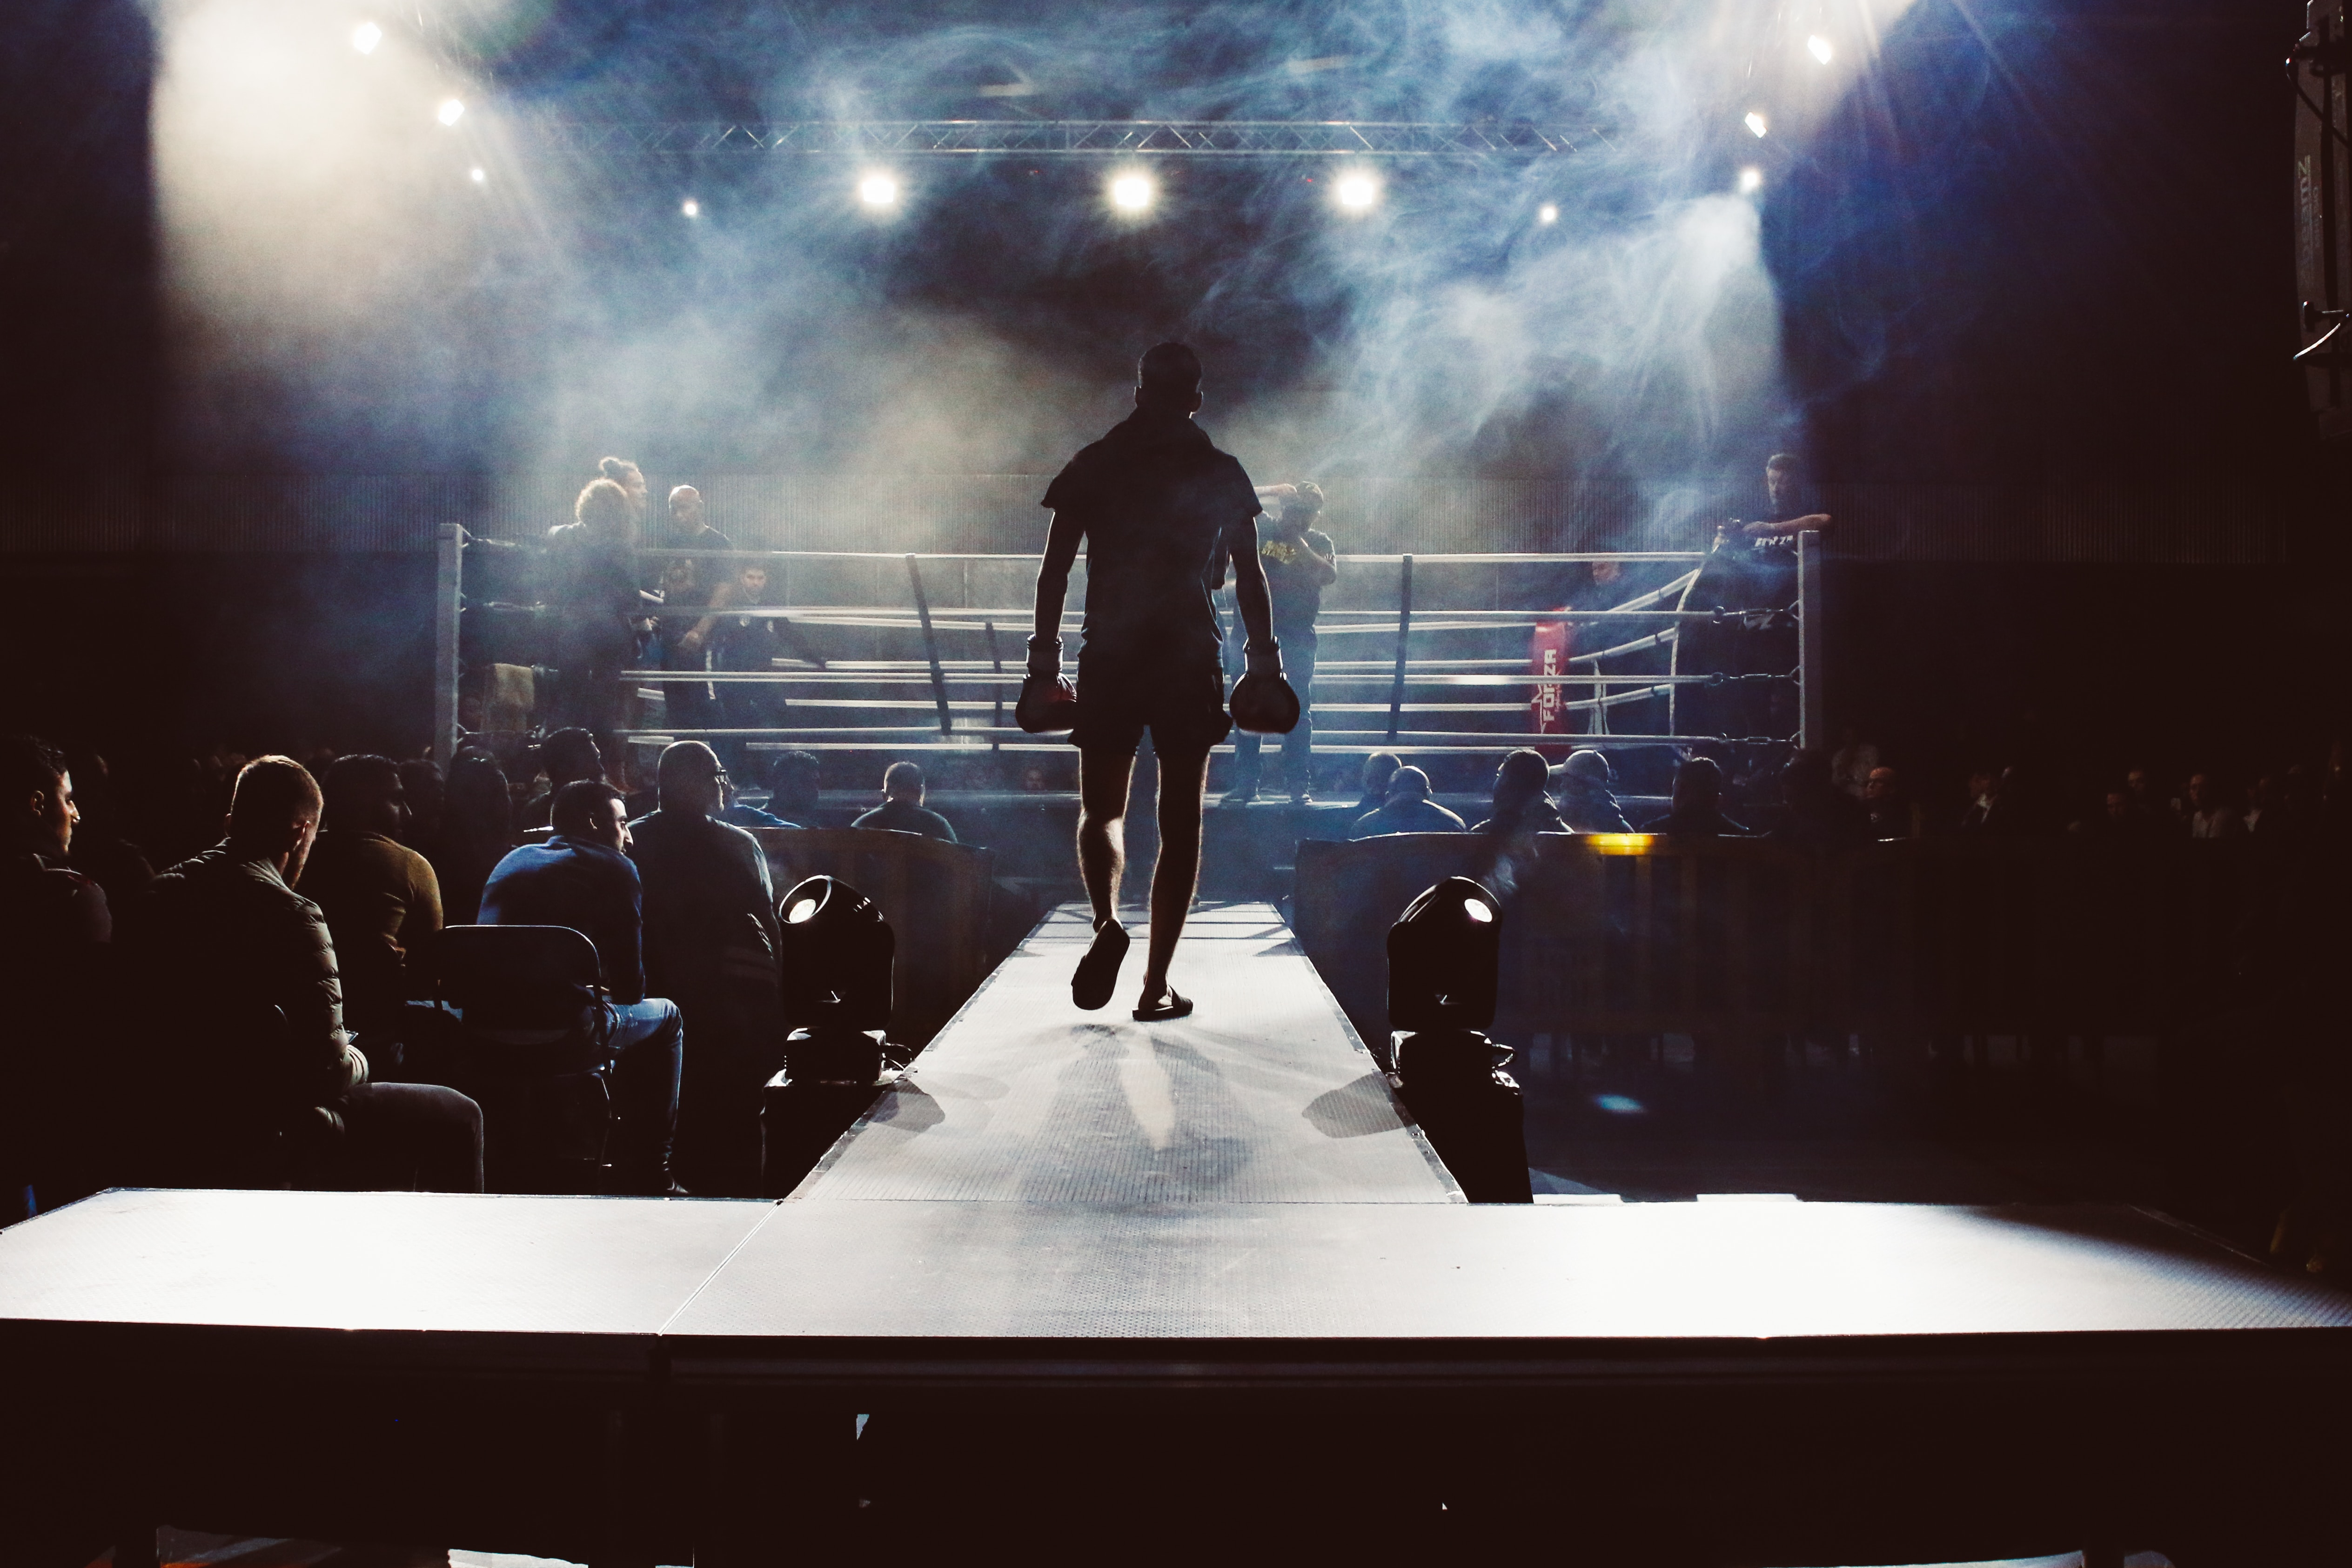 New NetScaler appliances announced – Lets get ready to rumble!